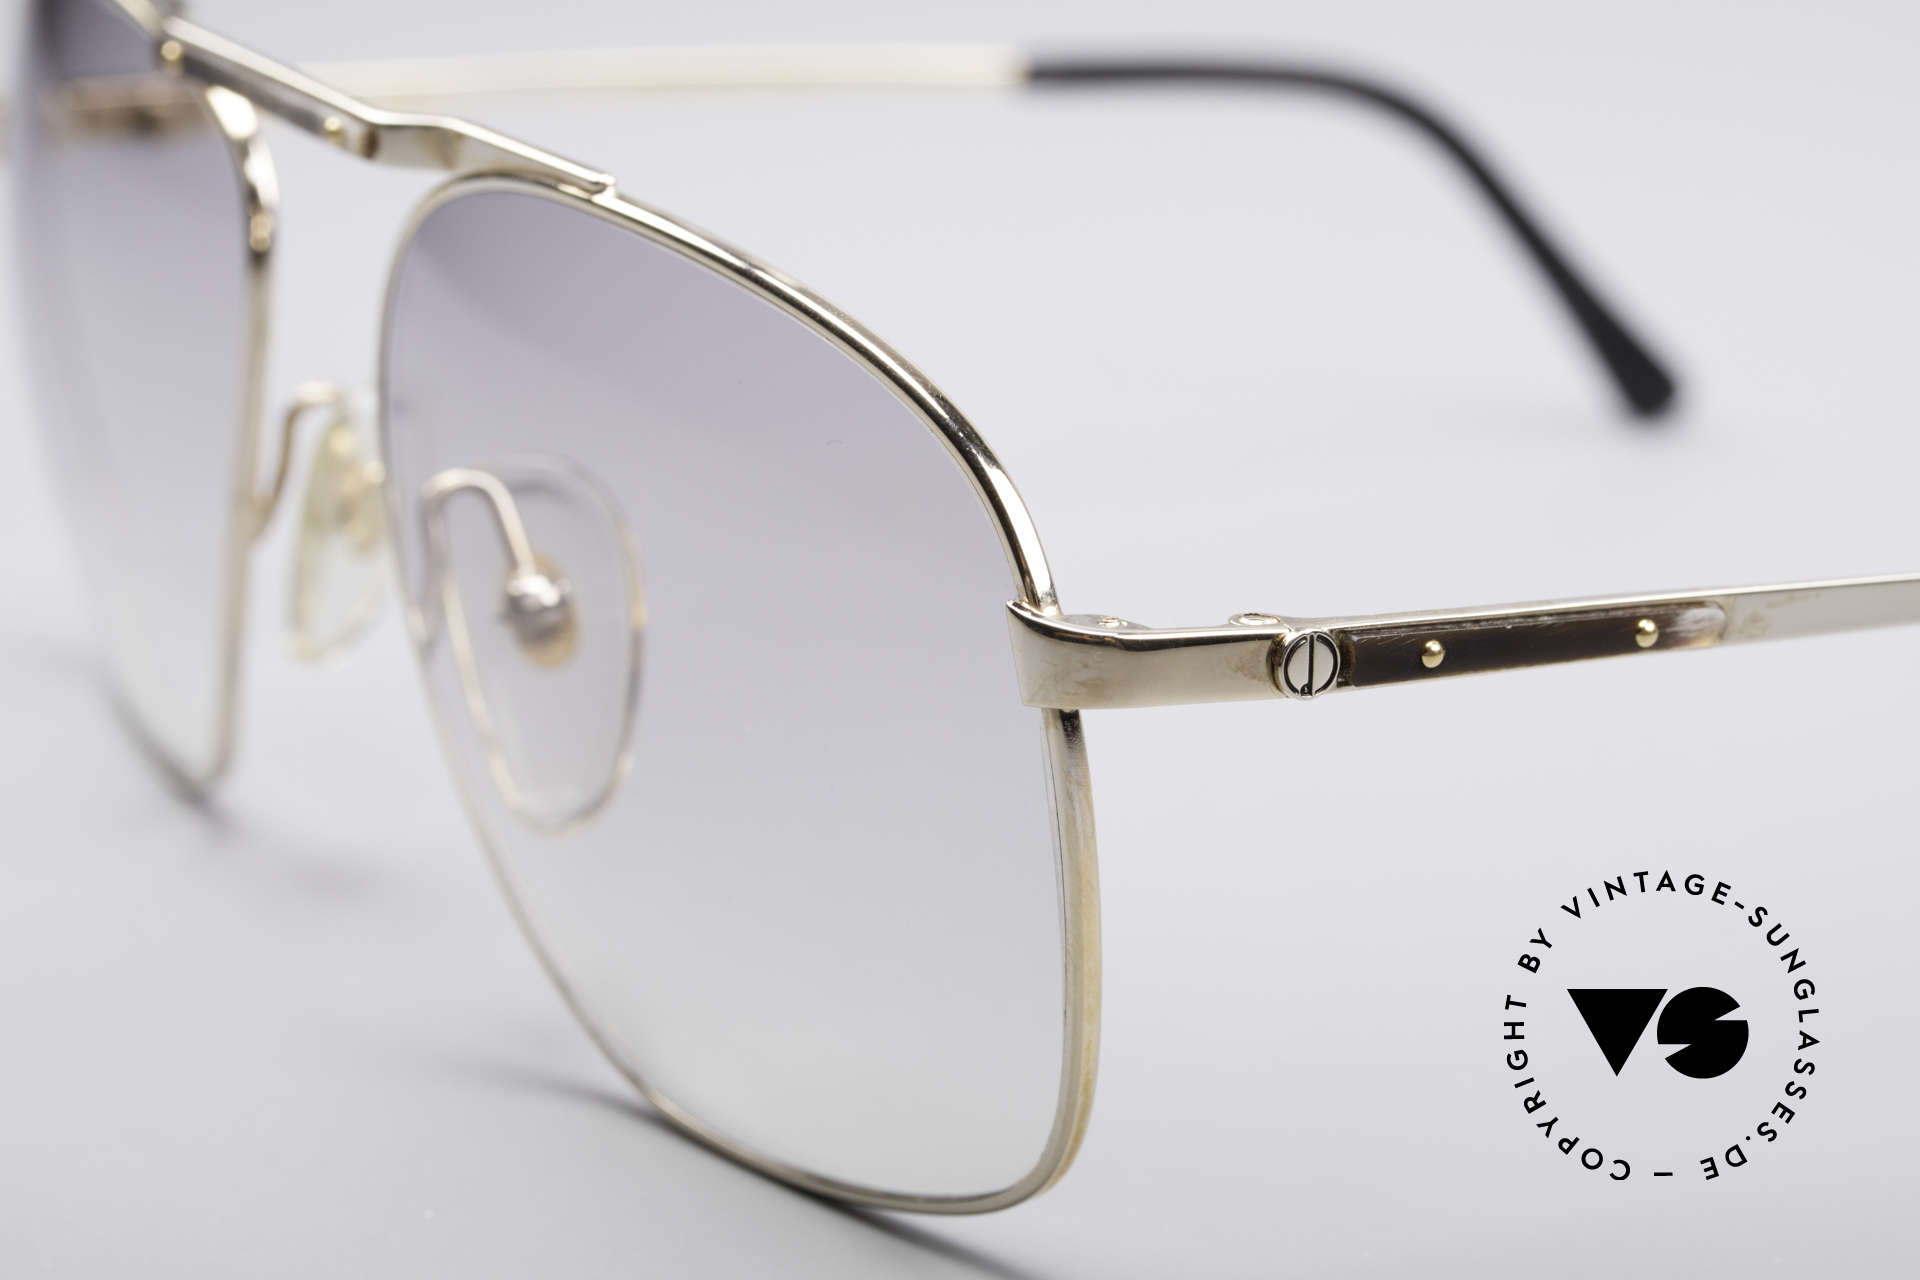 Dunhill 6046 80's Frame With Horn Appliqué, light tinted gray-gradient lenses; 100% UV protection, Made for Men